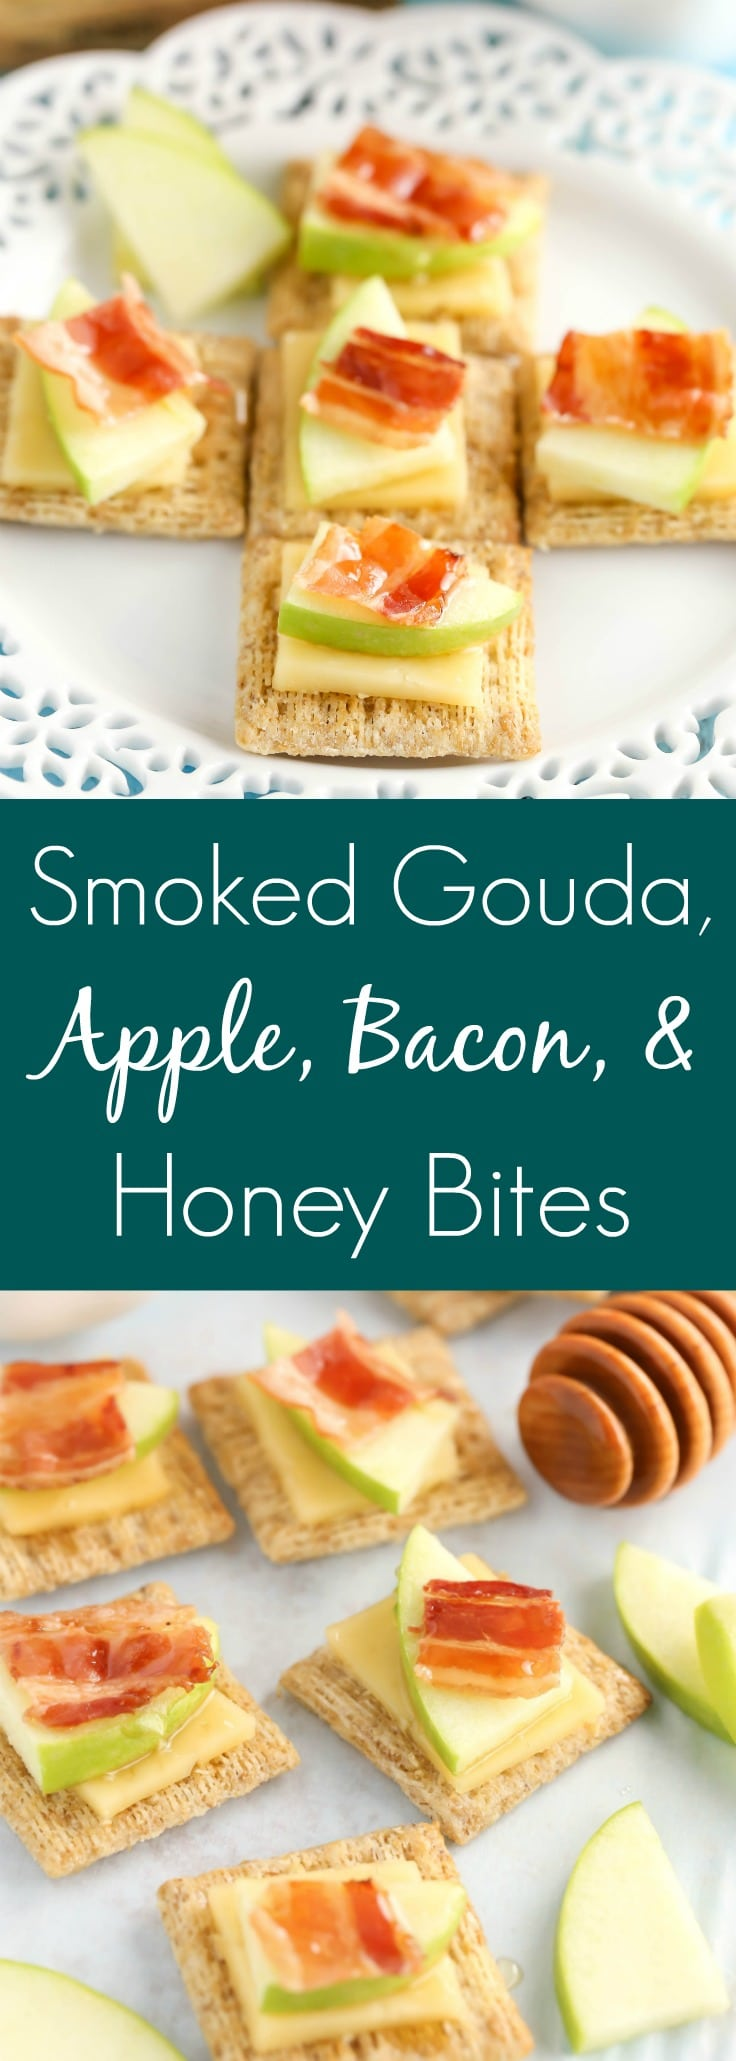 These Smoked Gouda, Apple, Bacon, and Honey Bites are a delicious andeasy appetizer!